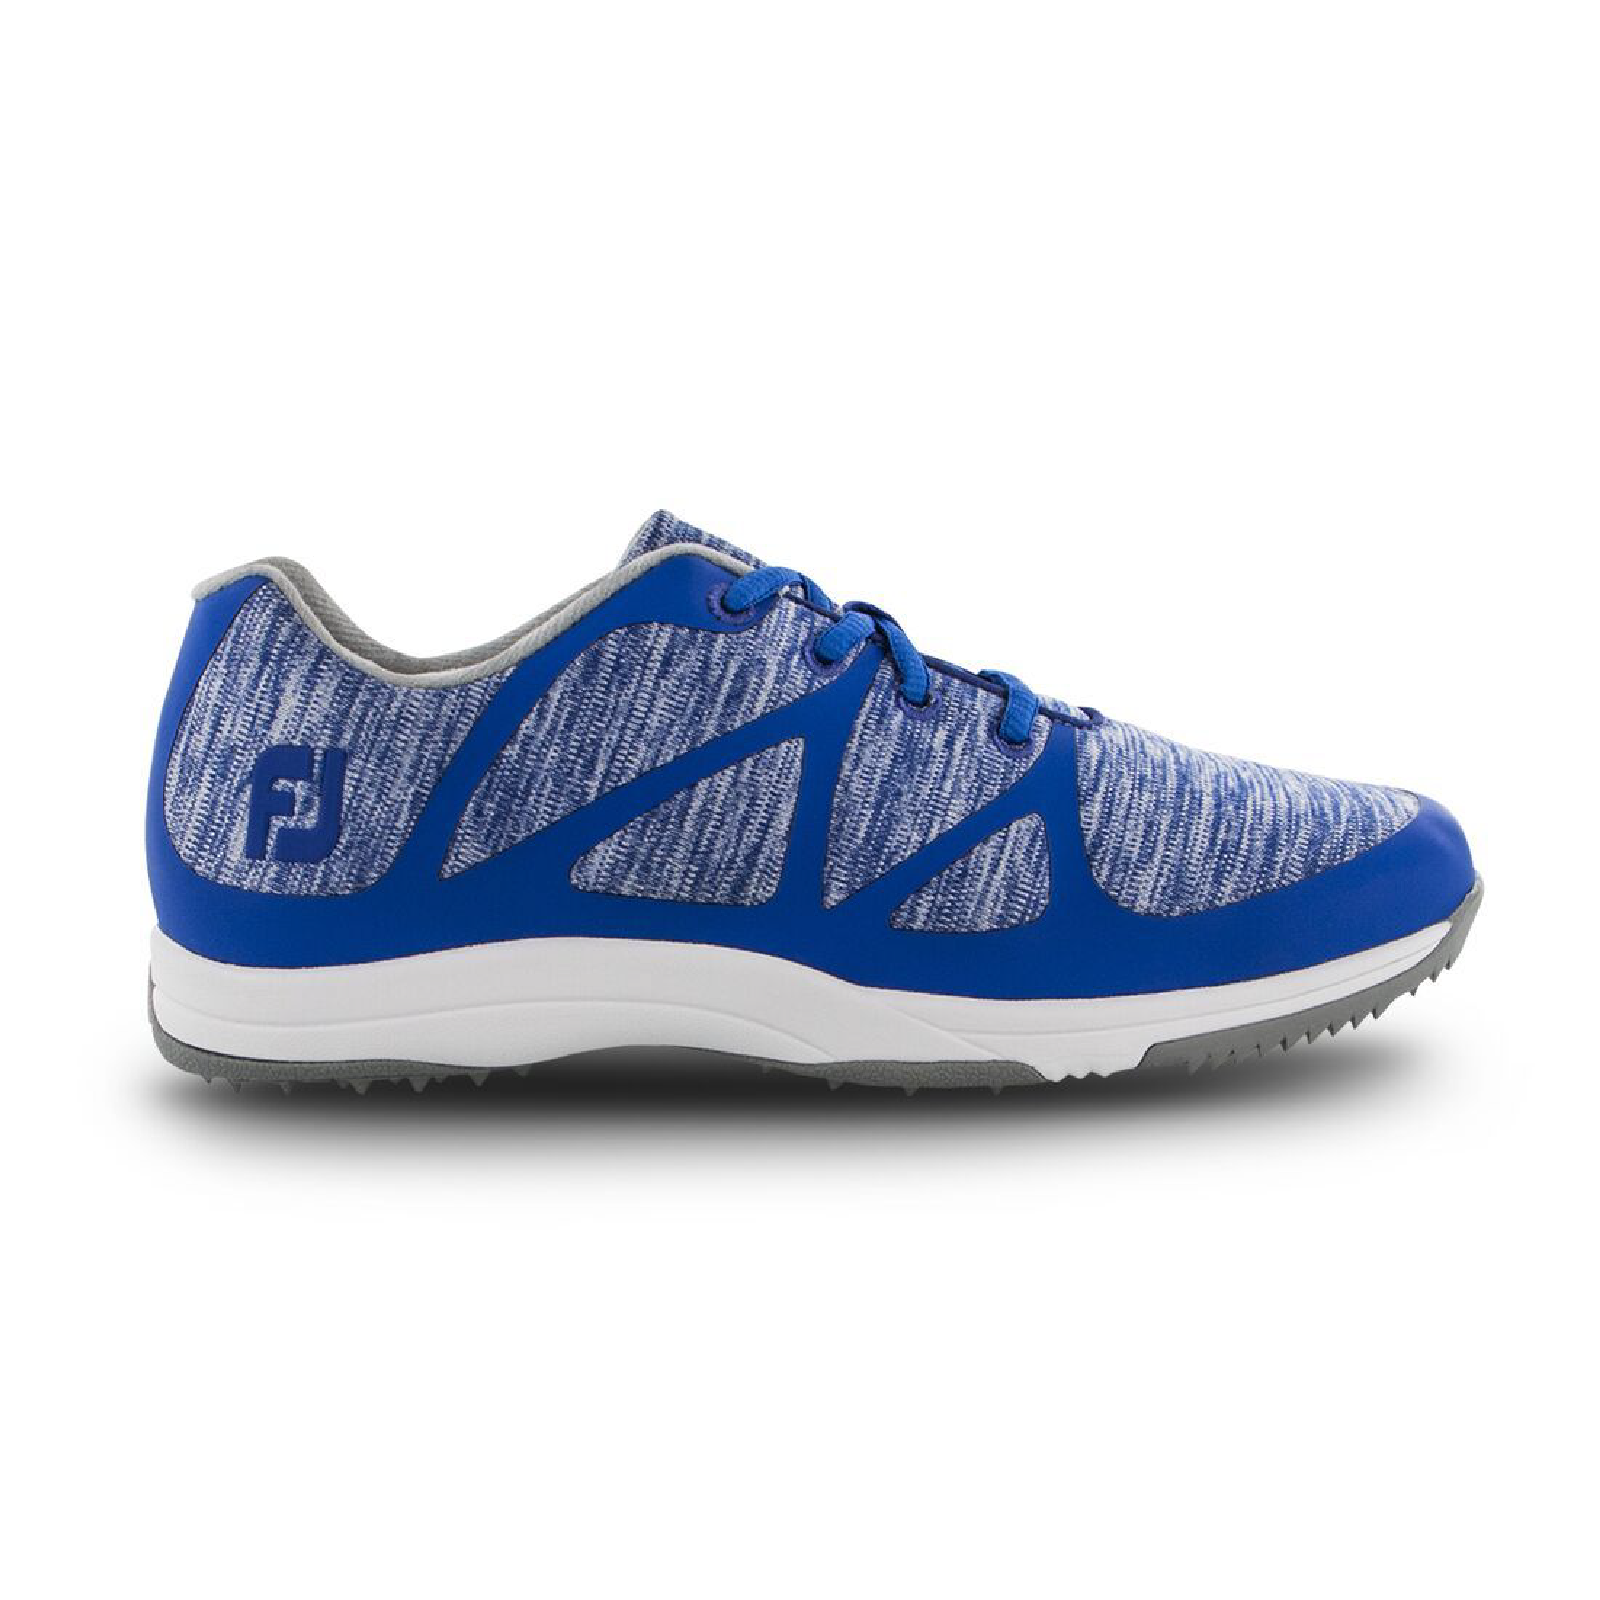 Footjoy Womens Leisure Golf Shoes - Blue - Previous Season Style